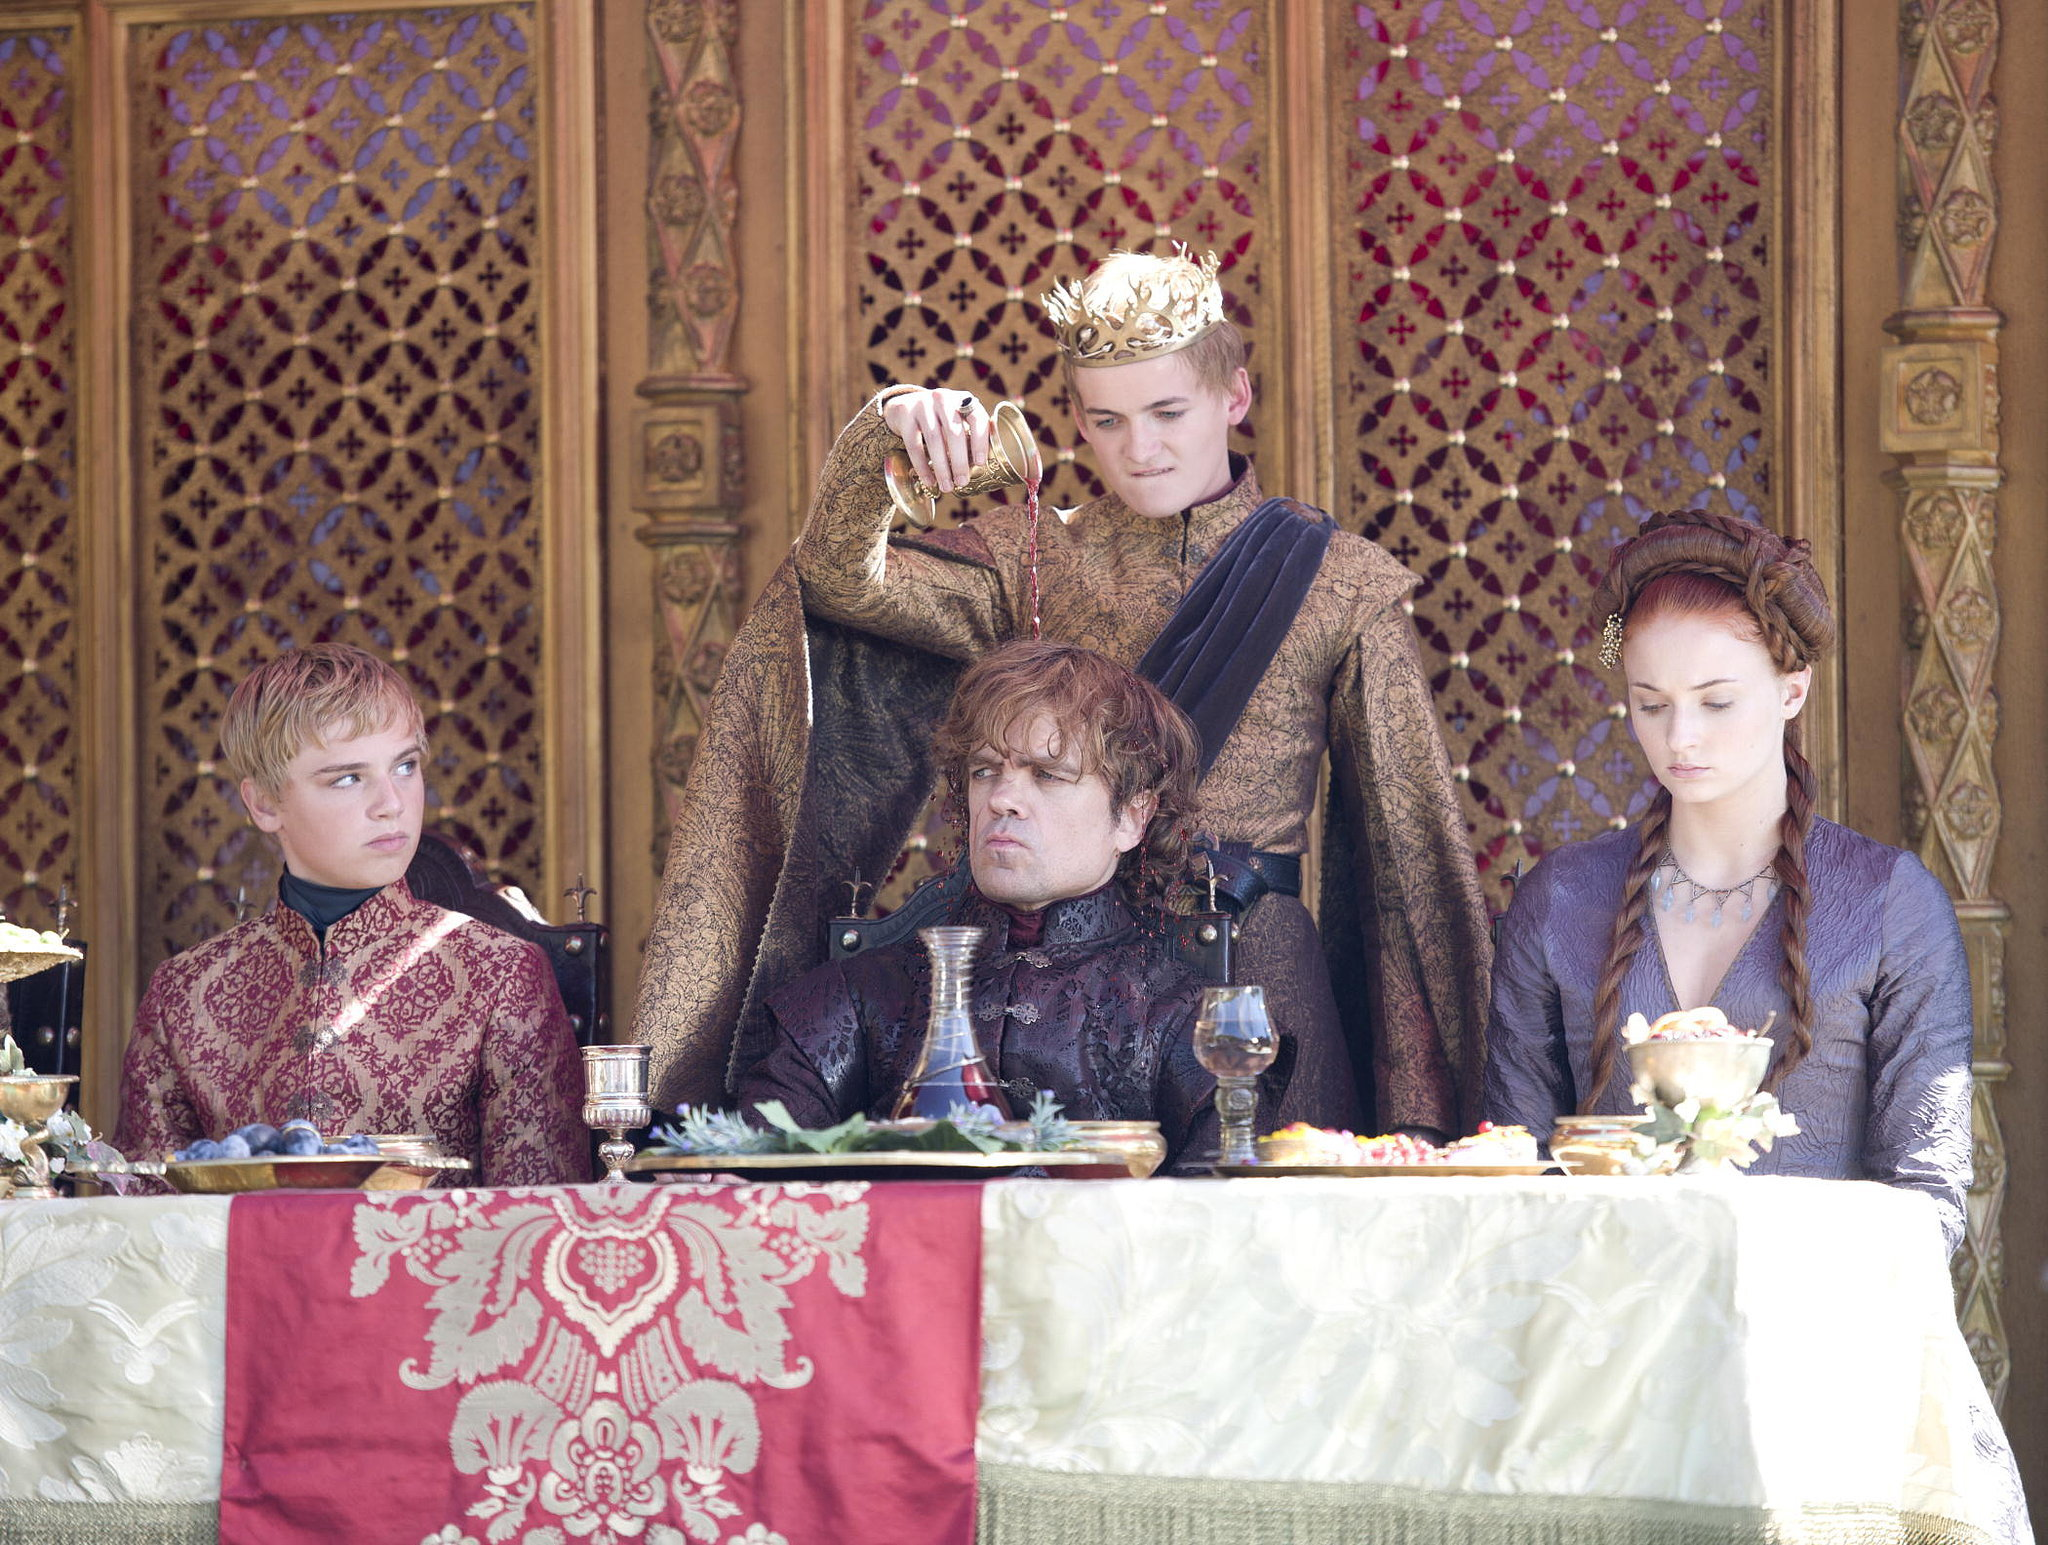 Game Of Thrones Purple Wedding.Game Of Thrones Season 4 Purple Wedding Recap Popsugar